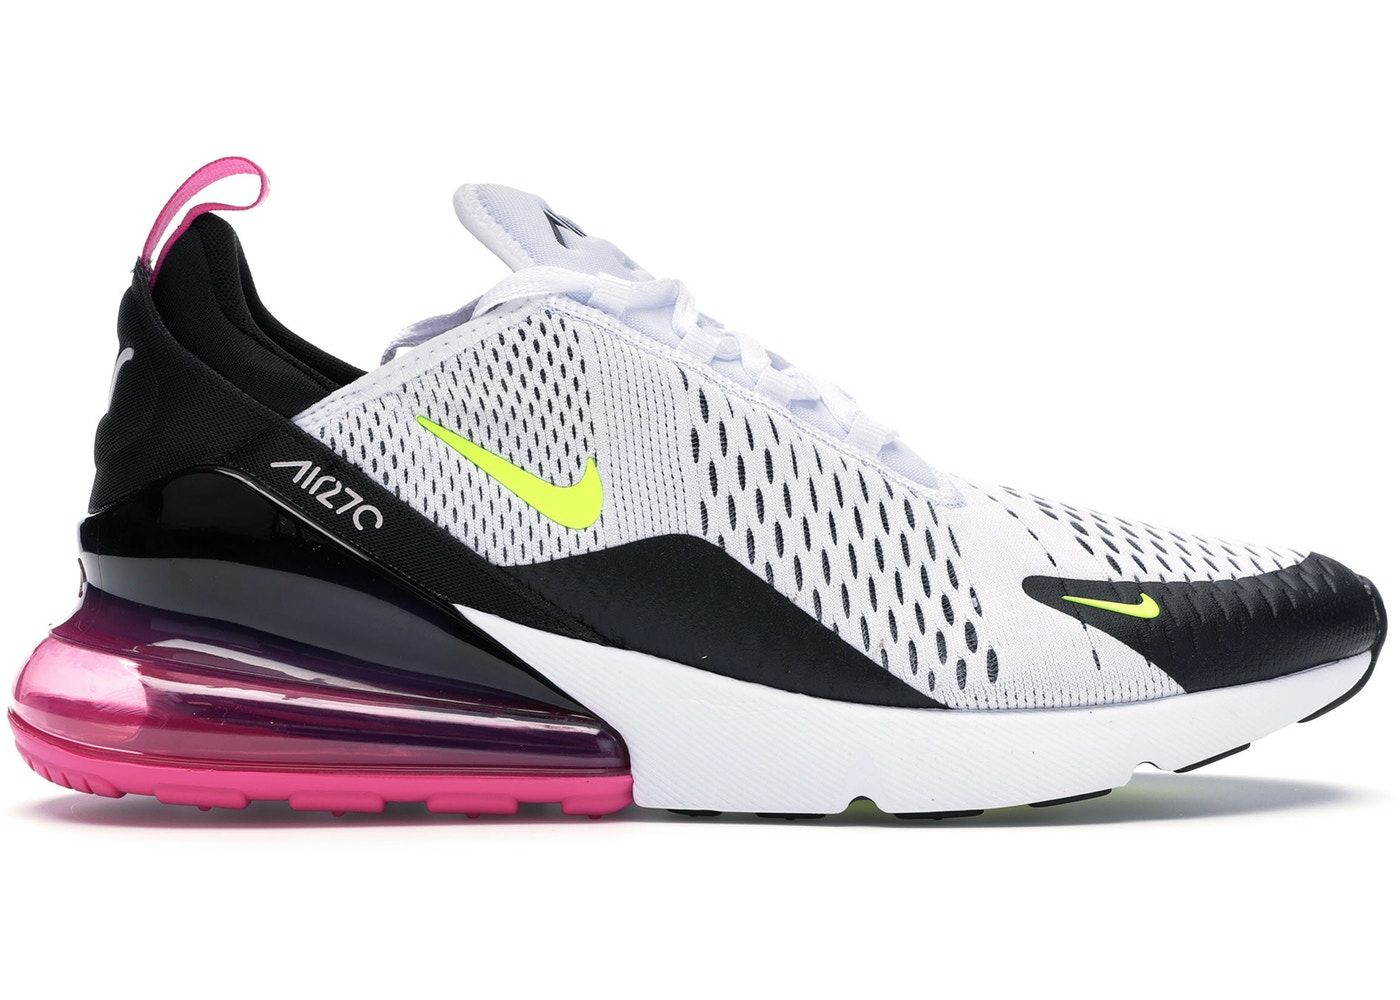 Nike Air Max 270 White Black Fuchsia Volt Ah8050 109